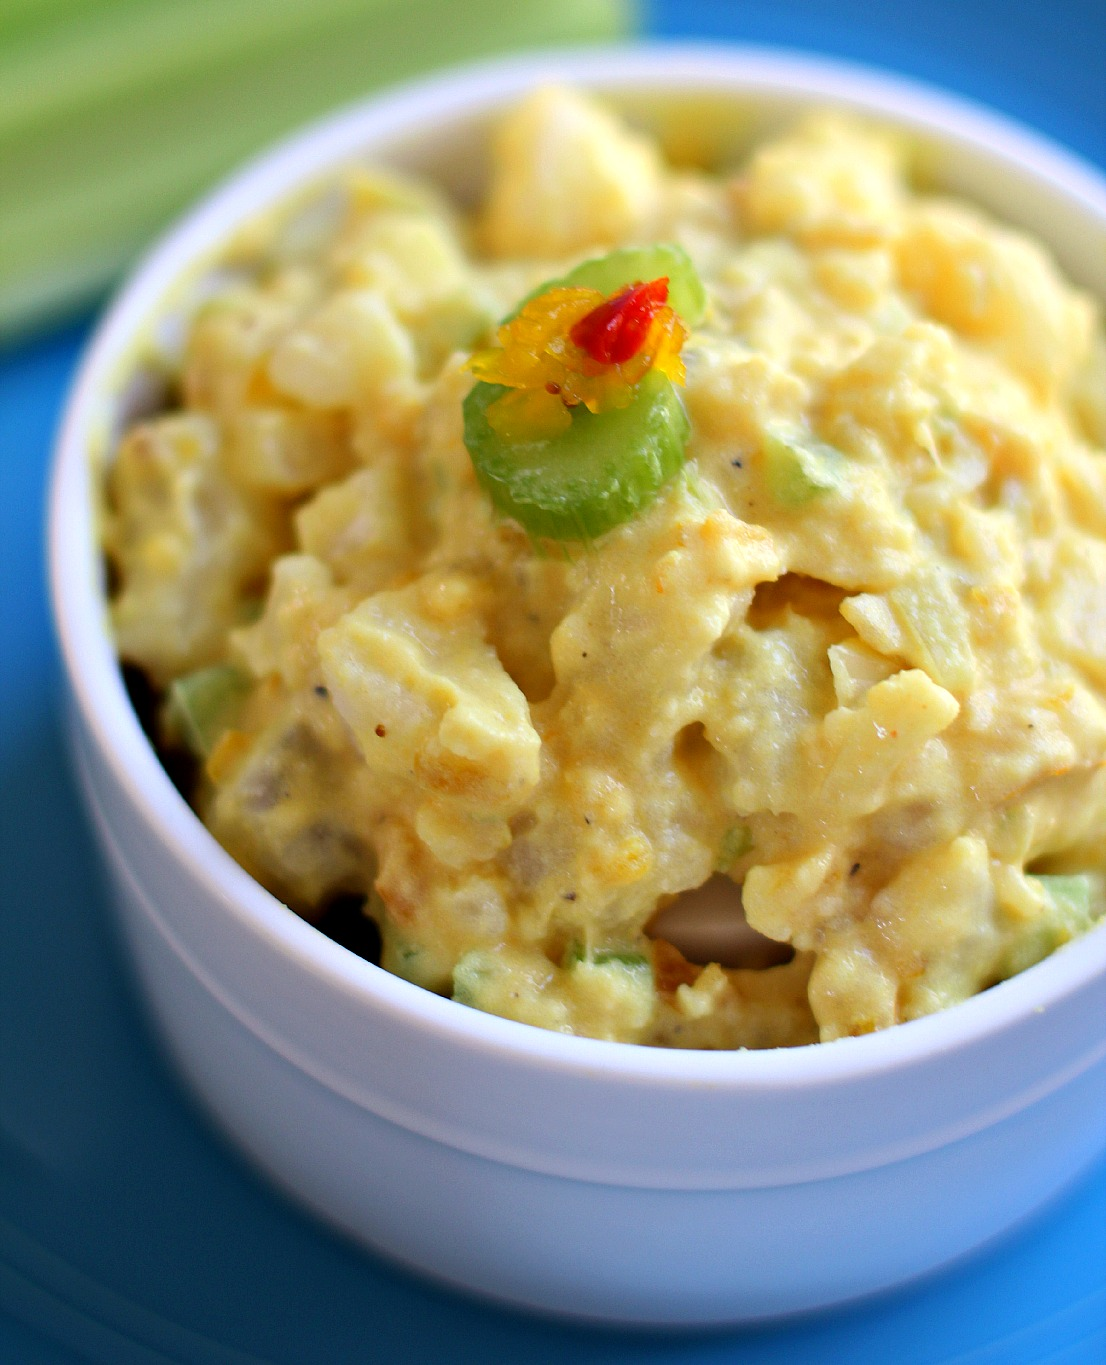 traditional mustard potato salad with a tangy tomato relish.